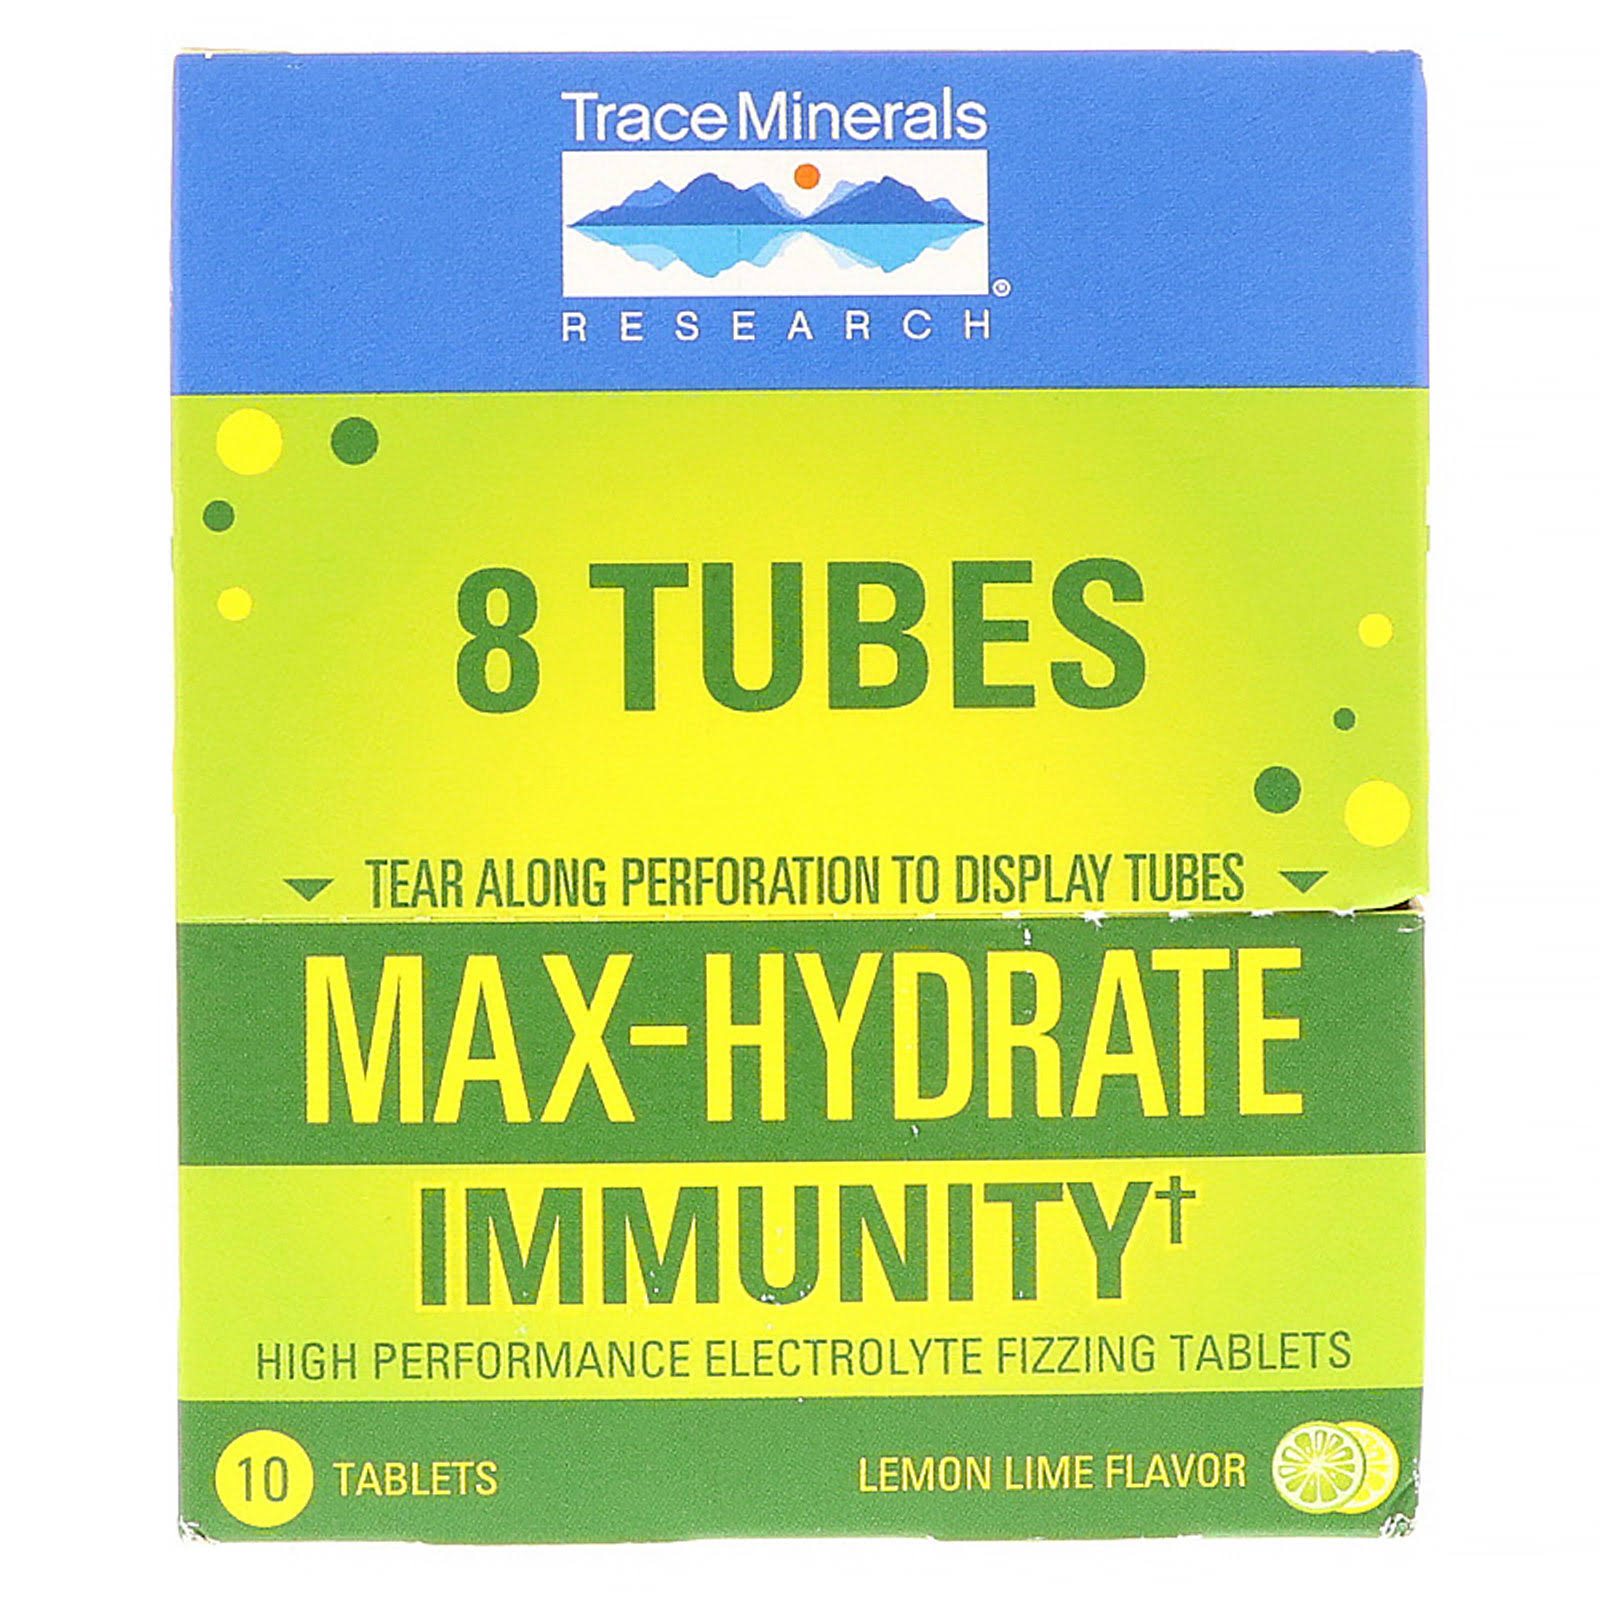 Trace Minerals Research Max-Hydrate Immunity 8 Tubes